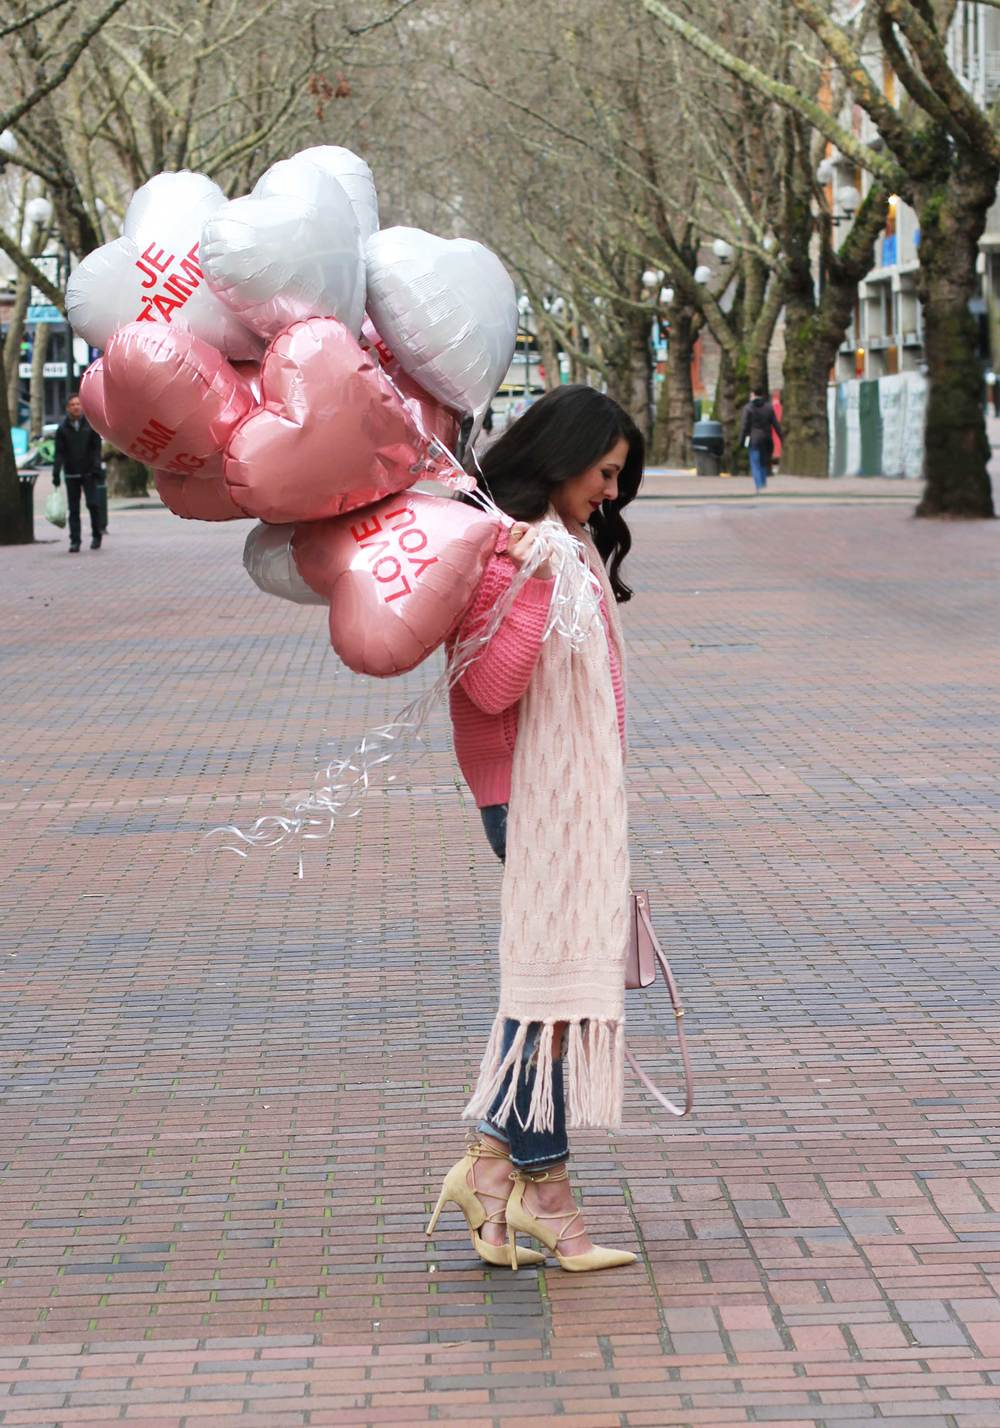 "Casual Valentine's Day Outfit, Banana Republic Cable-Knit Sweater & Scarf, Destroyed Girlfriend Jeans, Sam Edelman ""Dayna"" Lace-Up Pumps, Rebecca Minkoff 'Mab Mini' Bag, Conversation Heart Balloons"